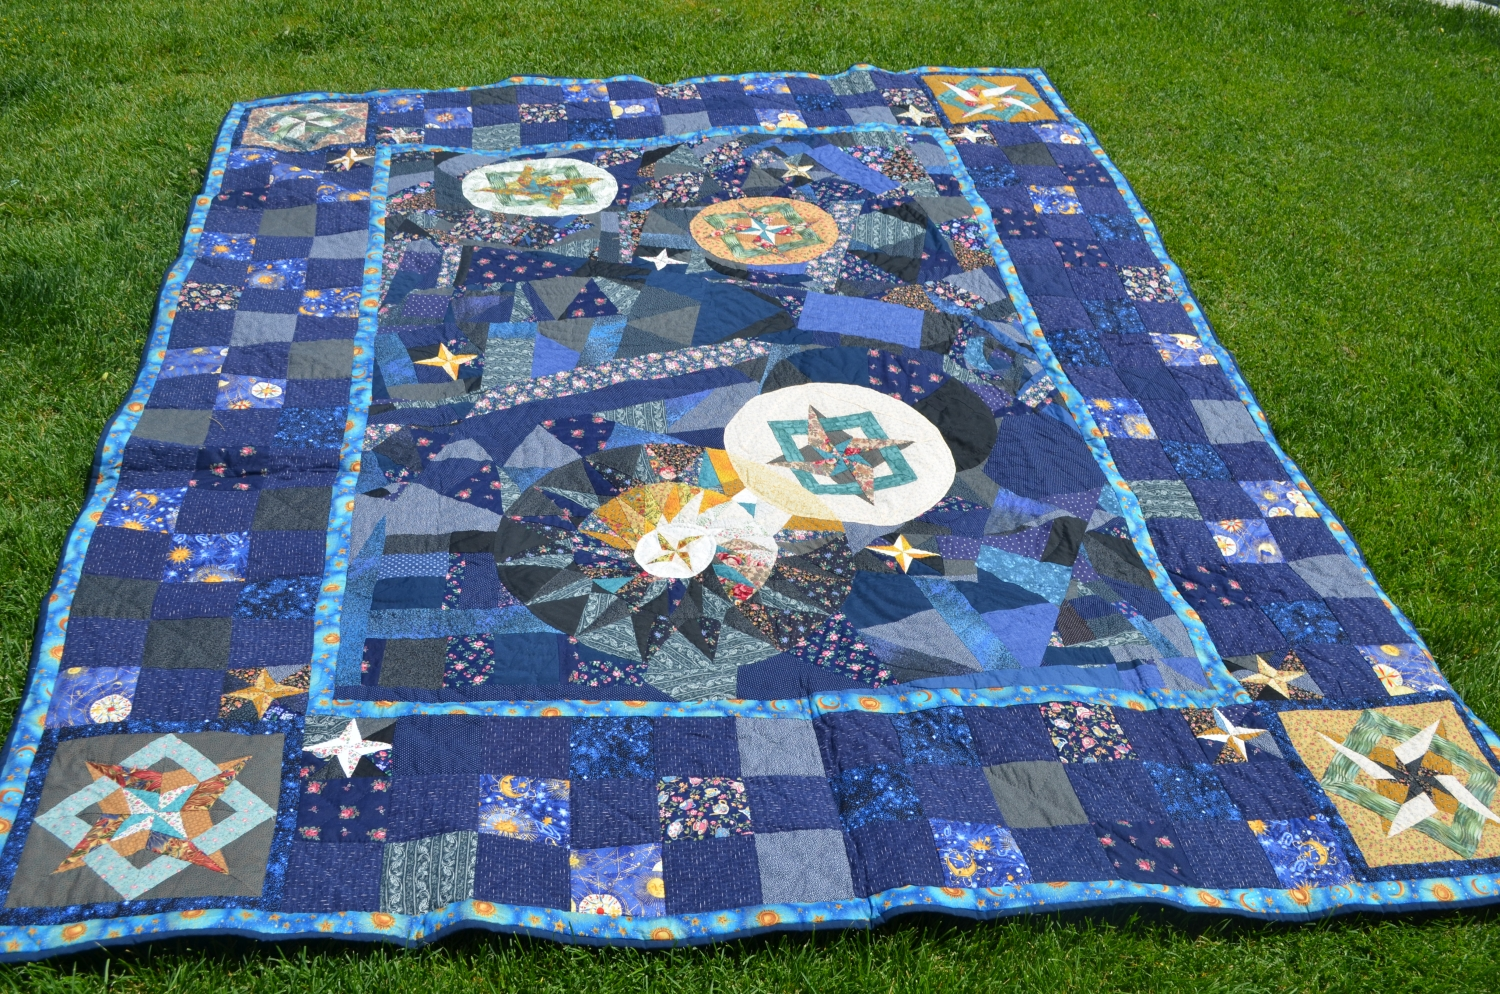 The McBride Sisters Never-ending Quilting Bee: Star Wars Quilt